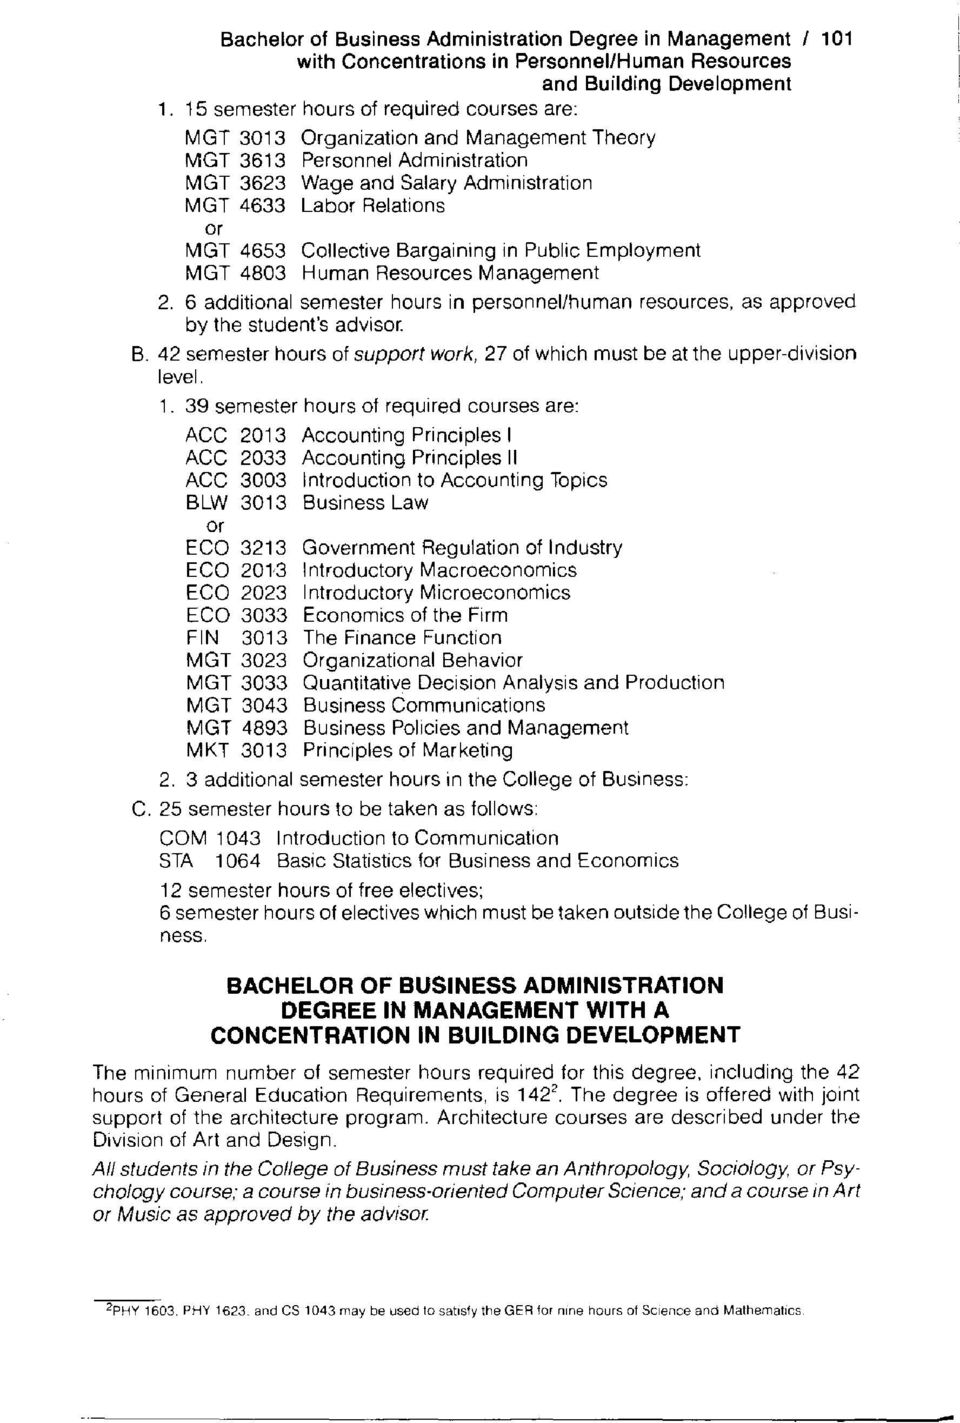 Relations Collective Bargaining in Public Employment Human Resources Management 2. 6 additional semester hours in personnel/human resources, as approved by the student's advisor. B. 42 semester hours of support work, 27 of which must be at the upper-division level.